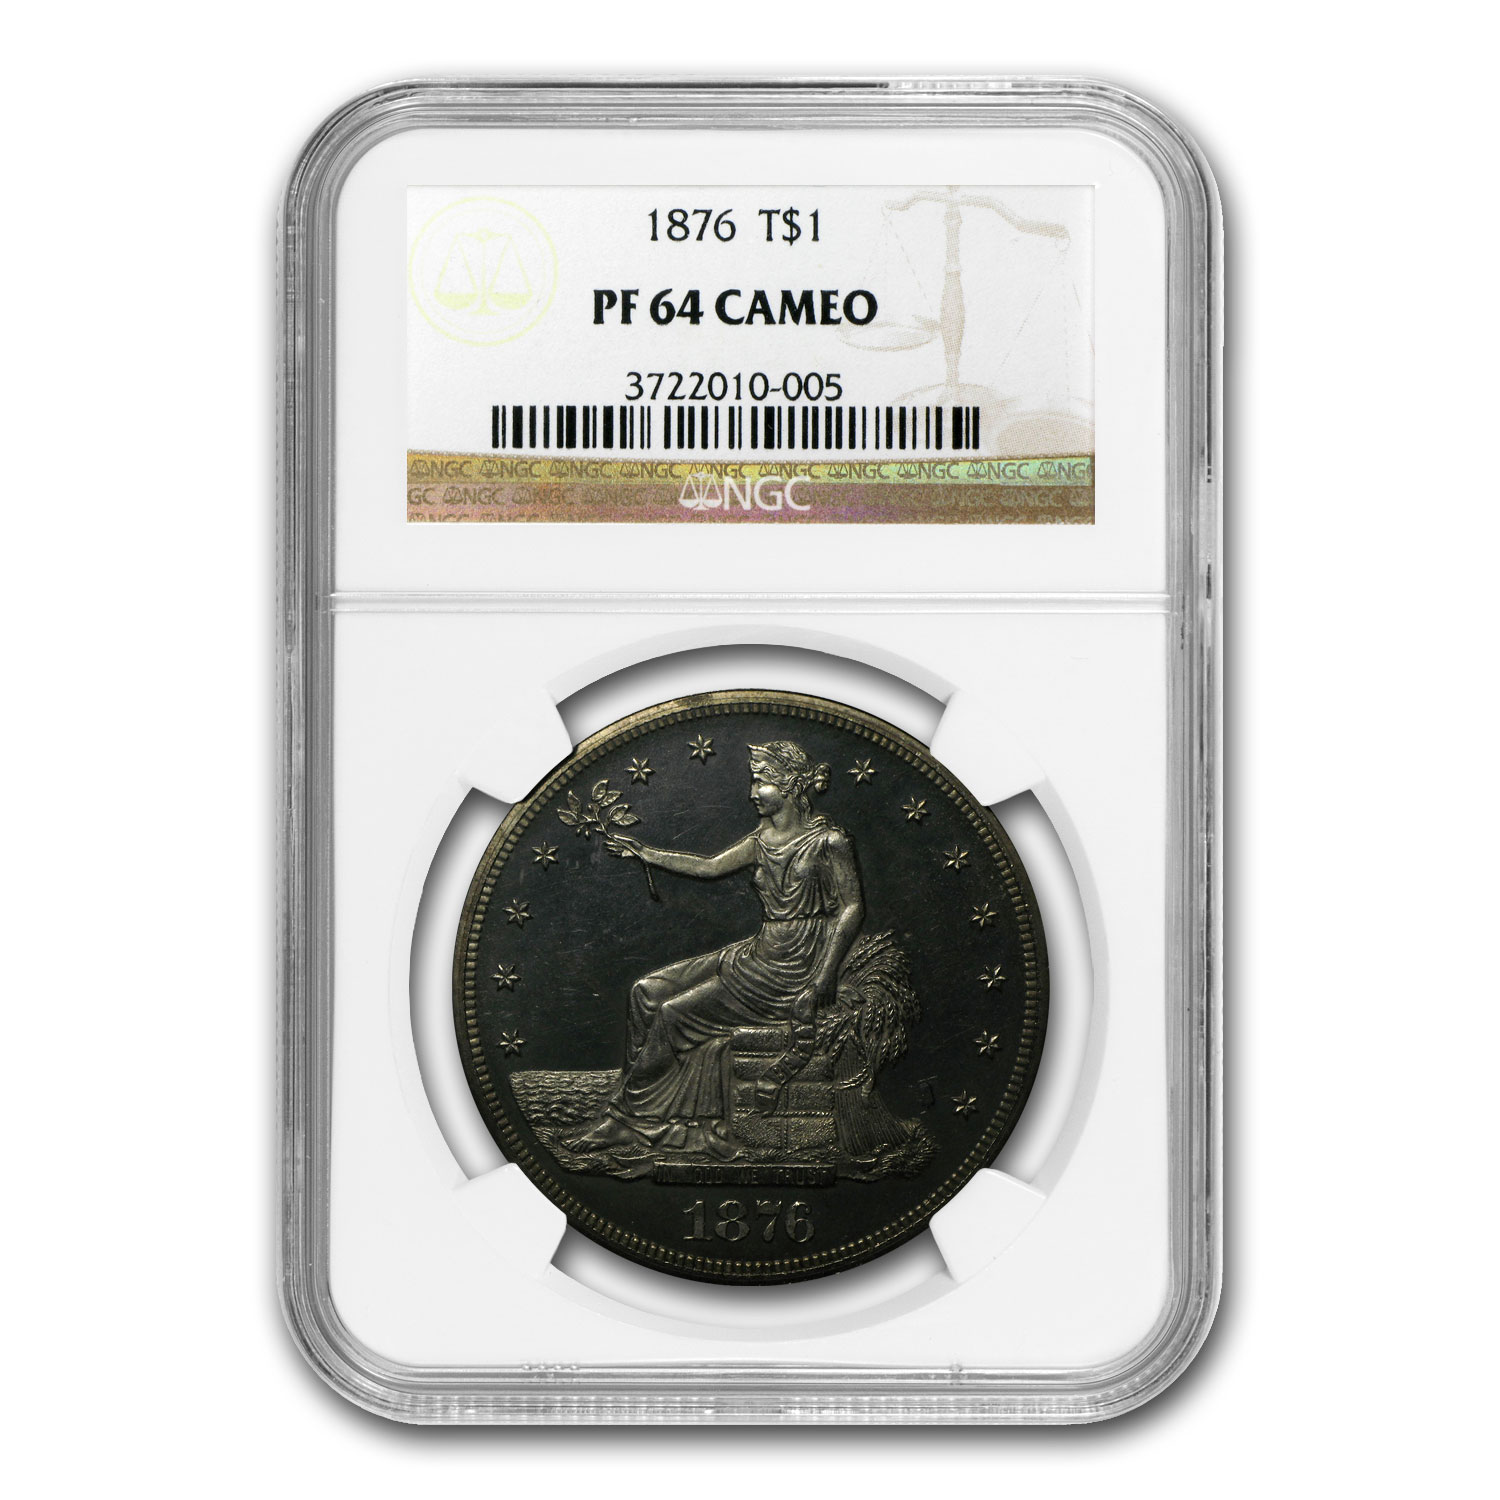 1876 Trade Dollar PF-64 Cameo NGC - Proof